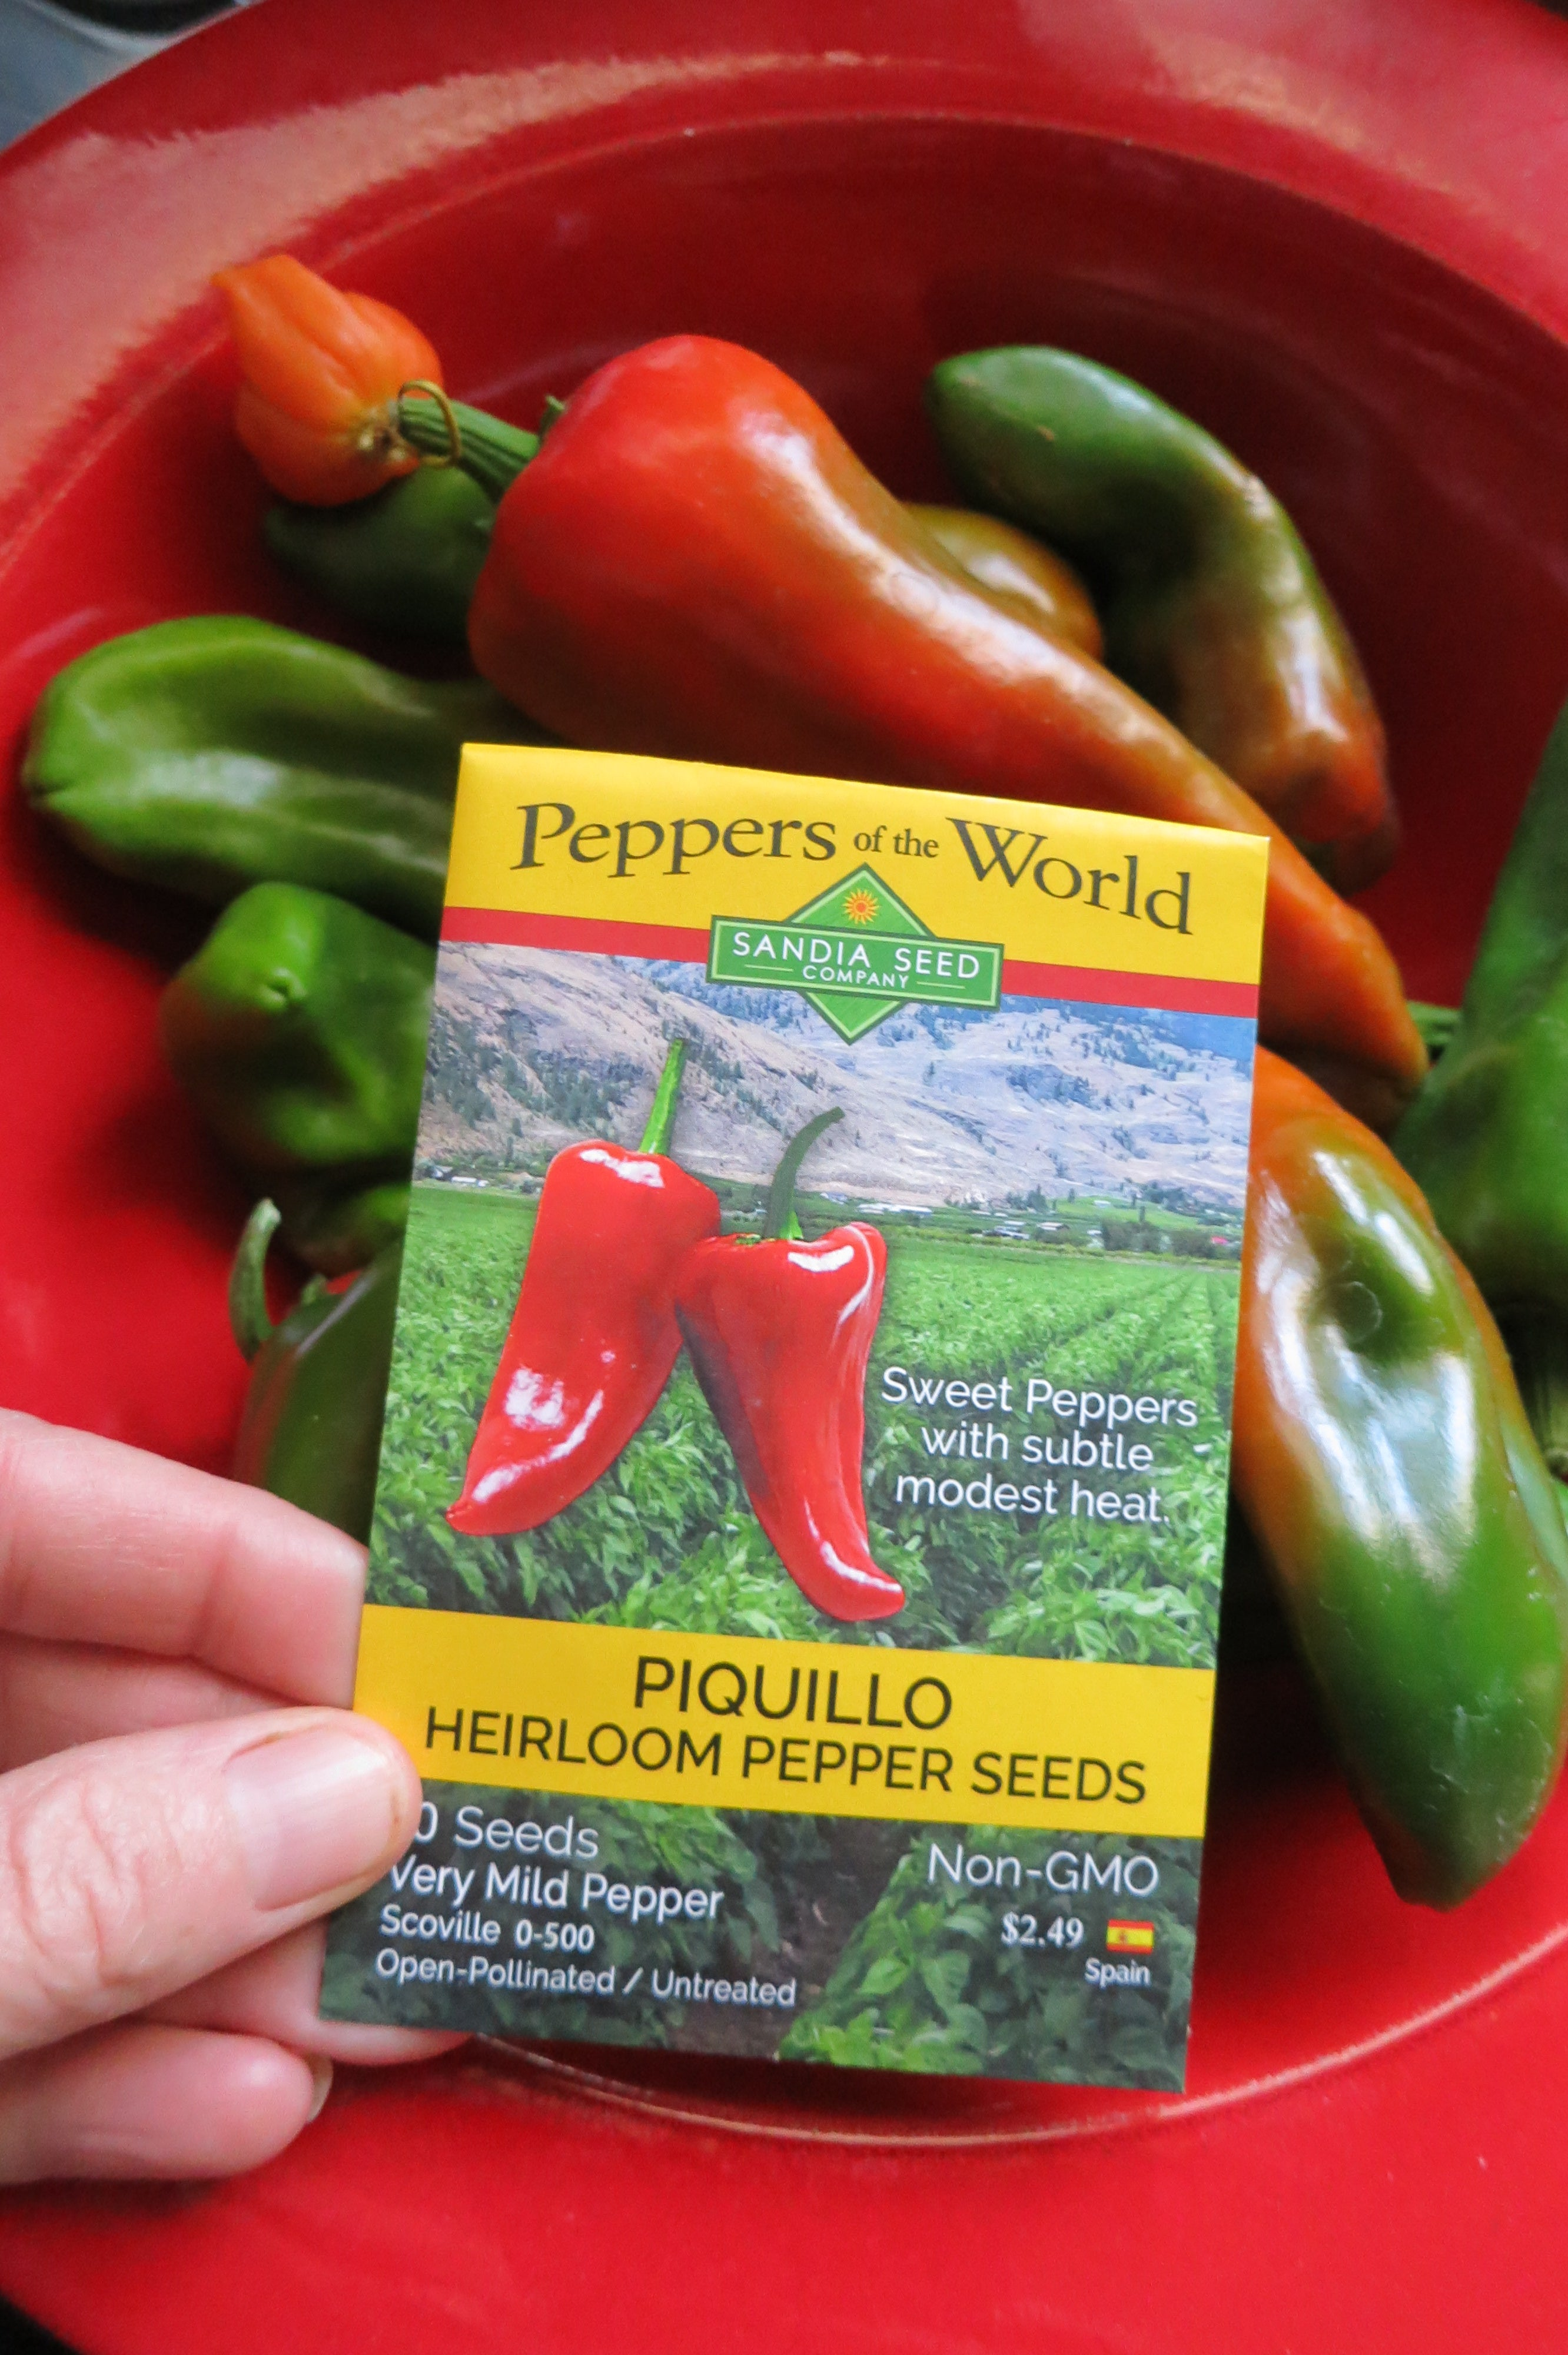 Piquillo Pepper Recipe - grow your own Piquillos!